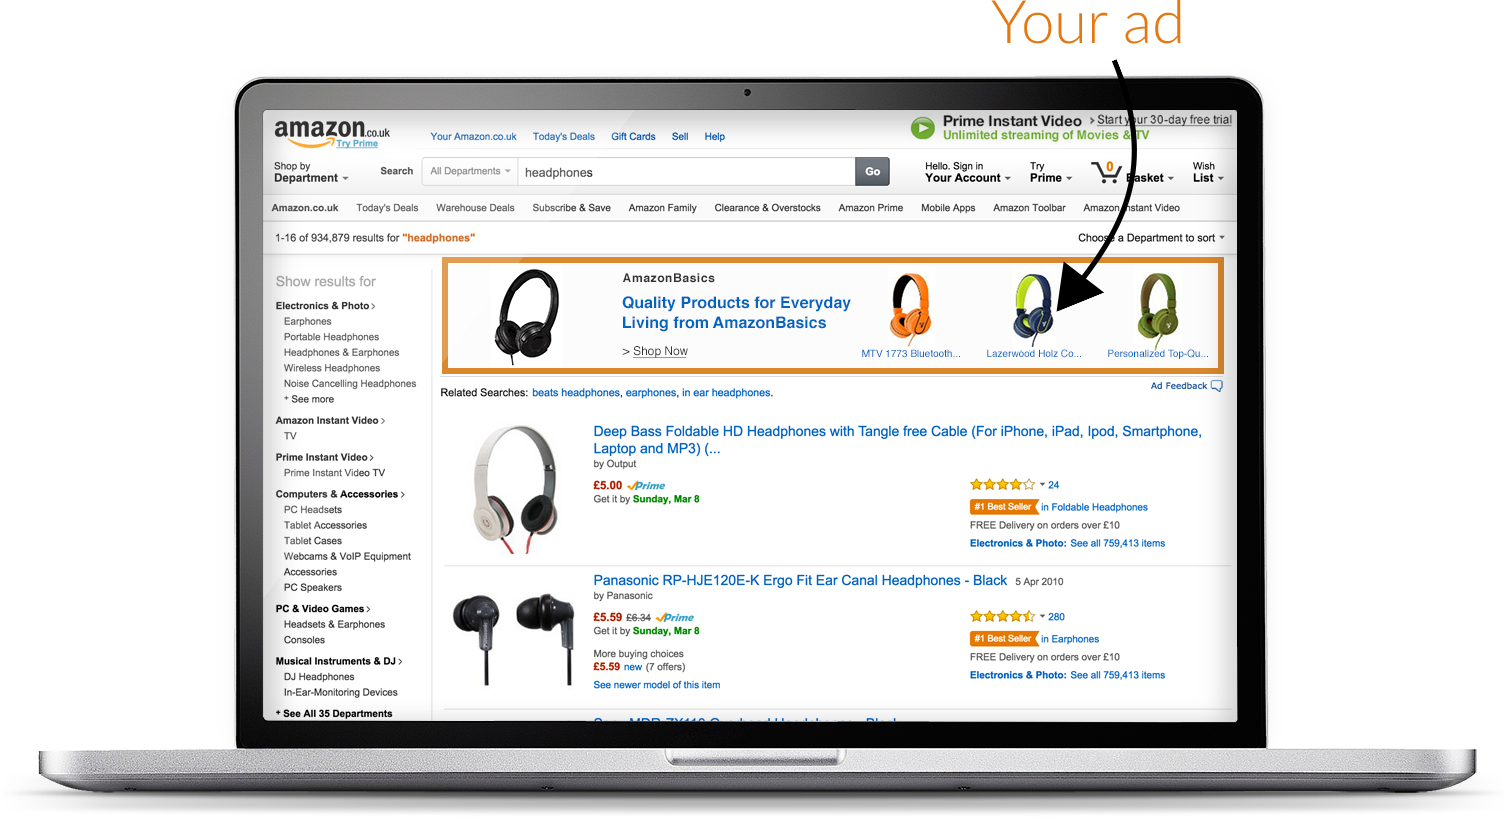 amazon marketing services 2018 sales strategies revealed here